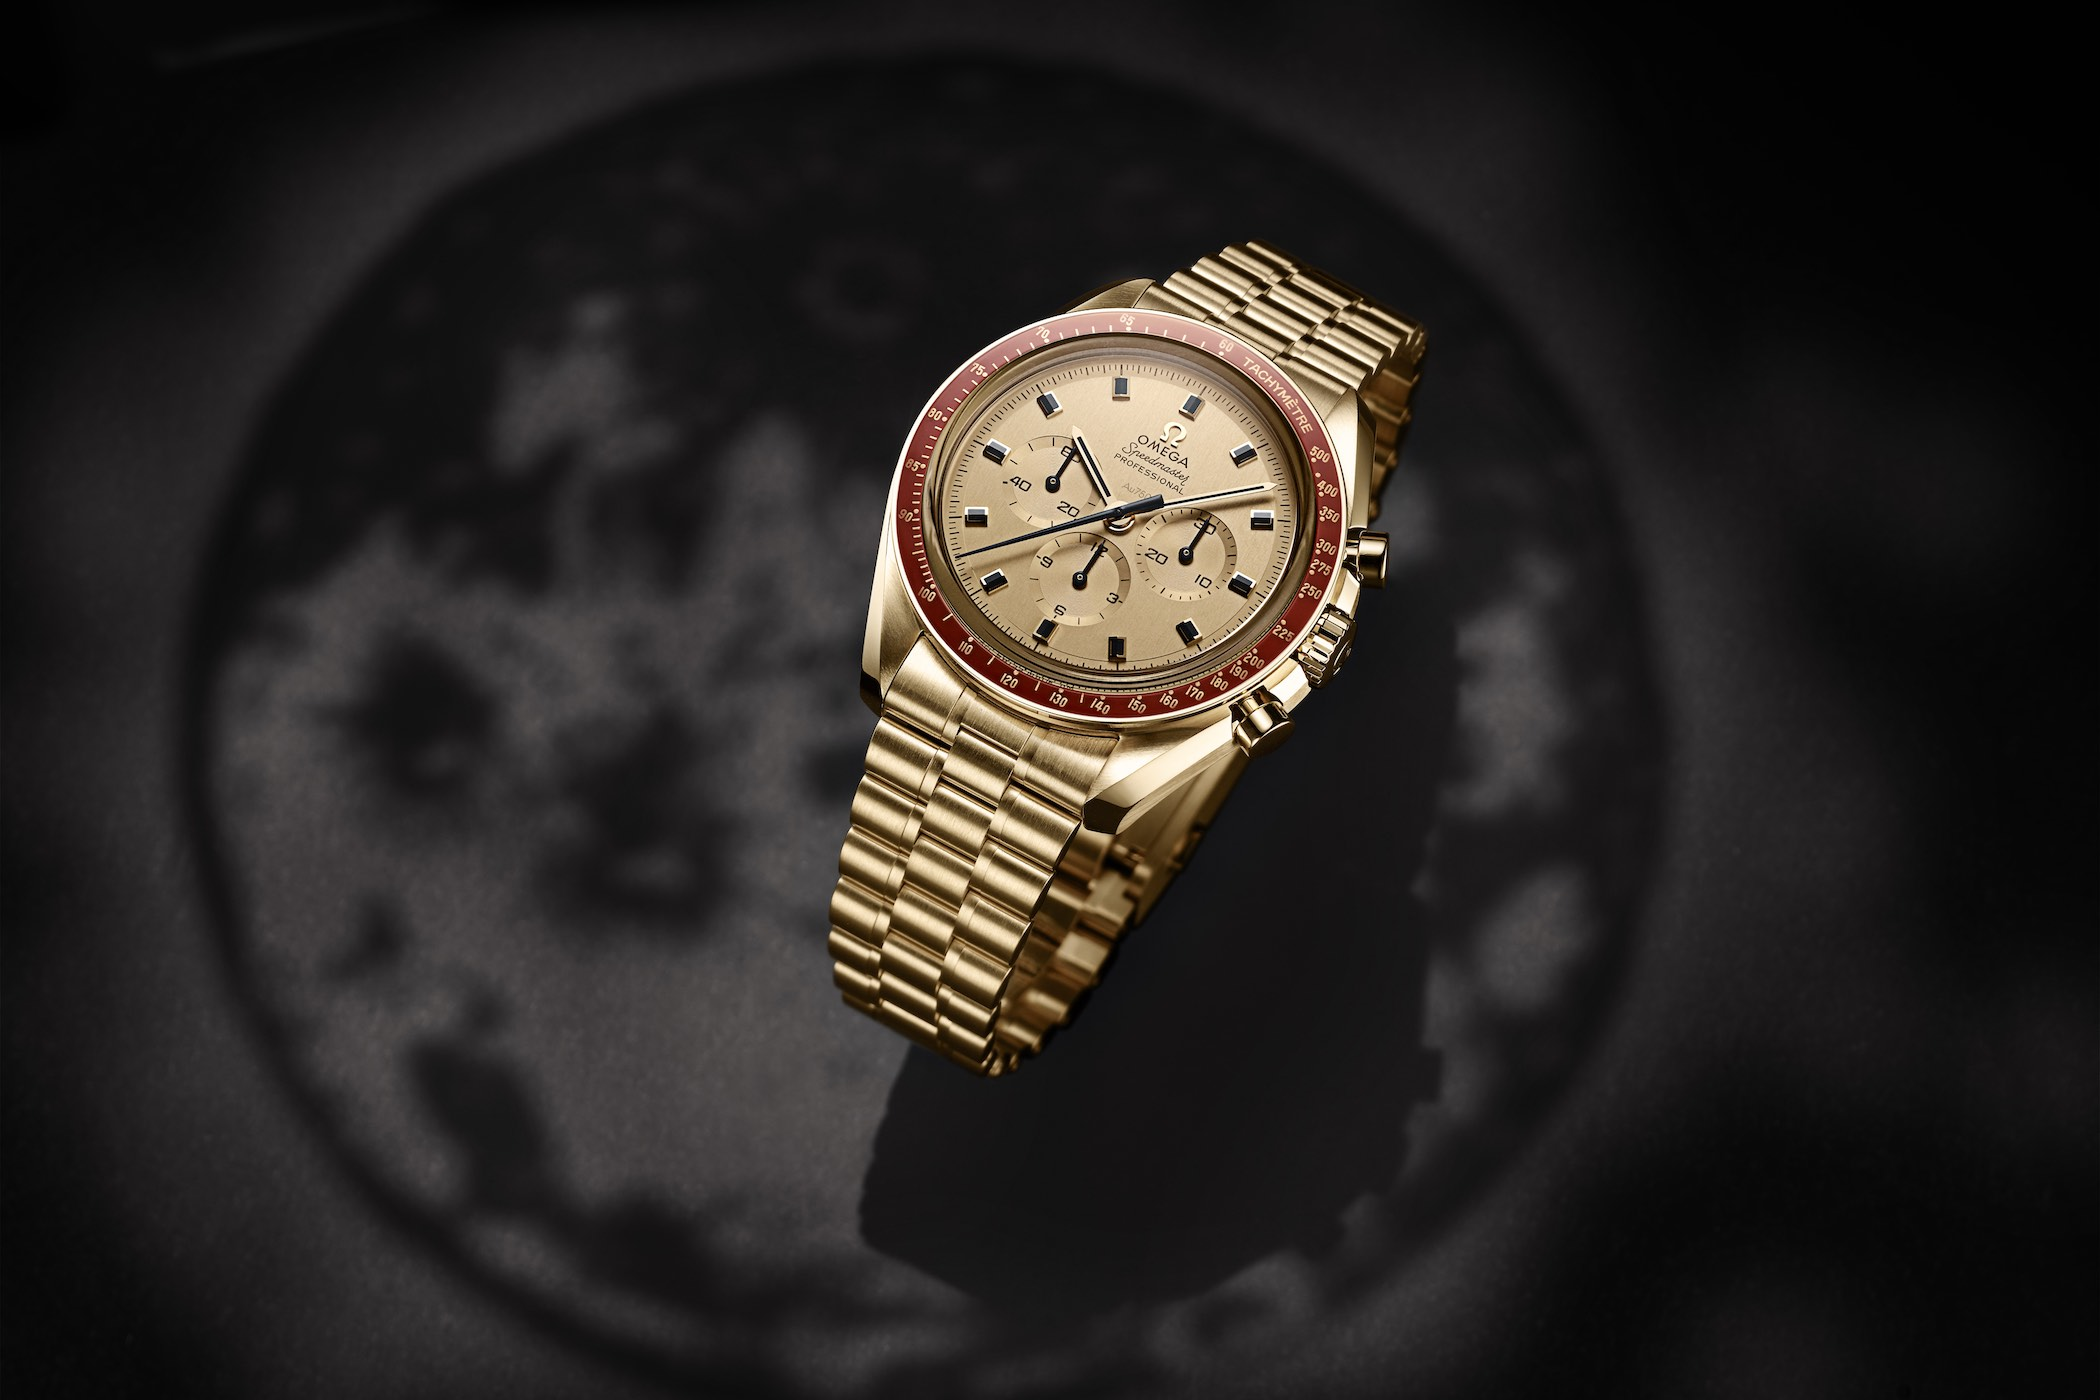 647620179ad The Stuff of Legend – Celebrating 50 Years of Moonwatch's Lunar Landing.  Omega relives that unforgettable day in ...